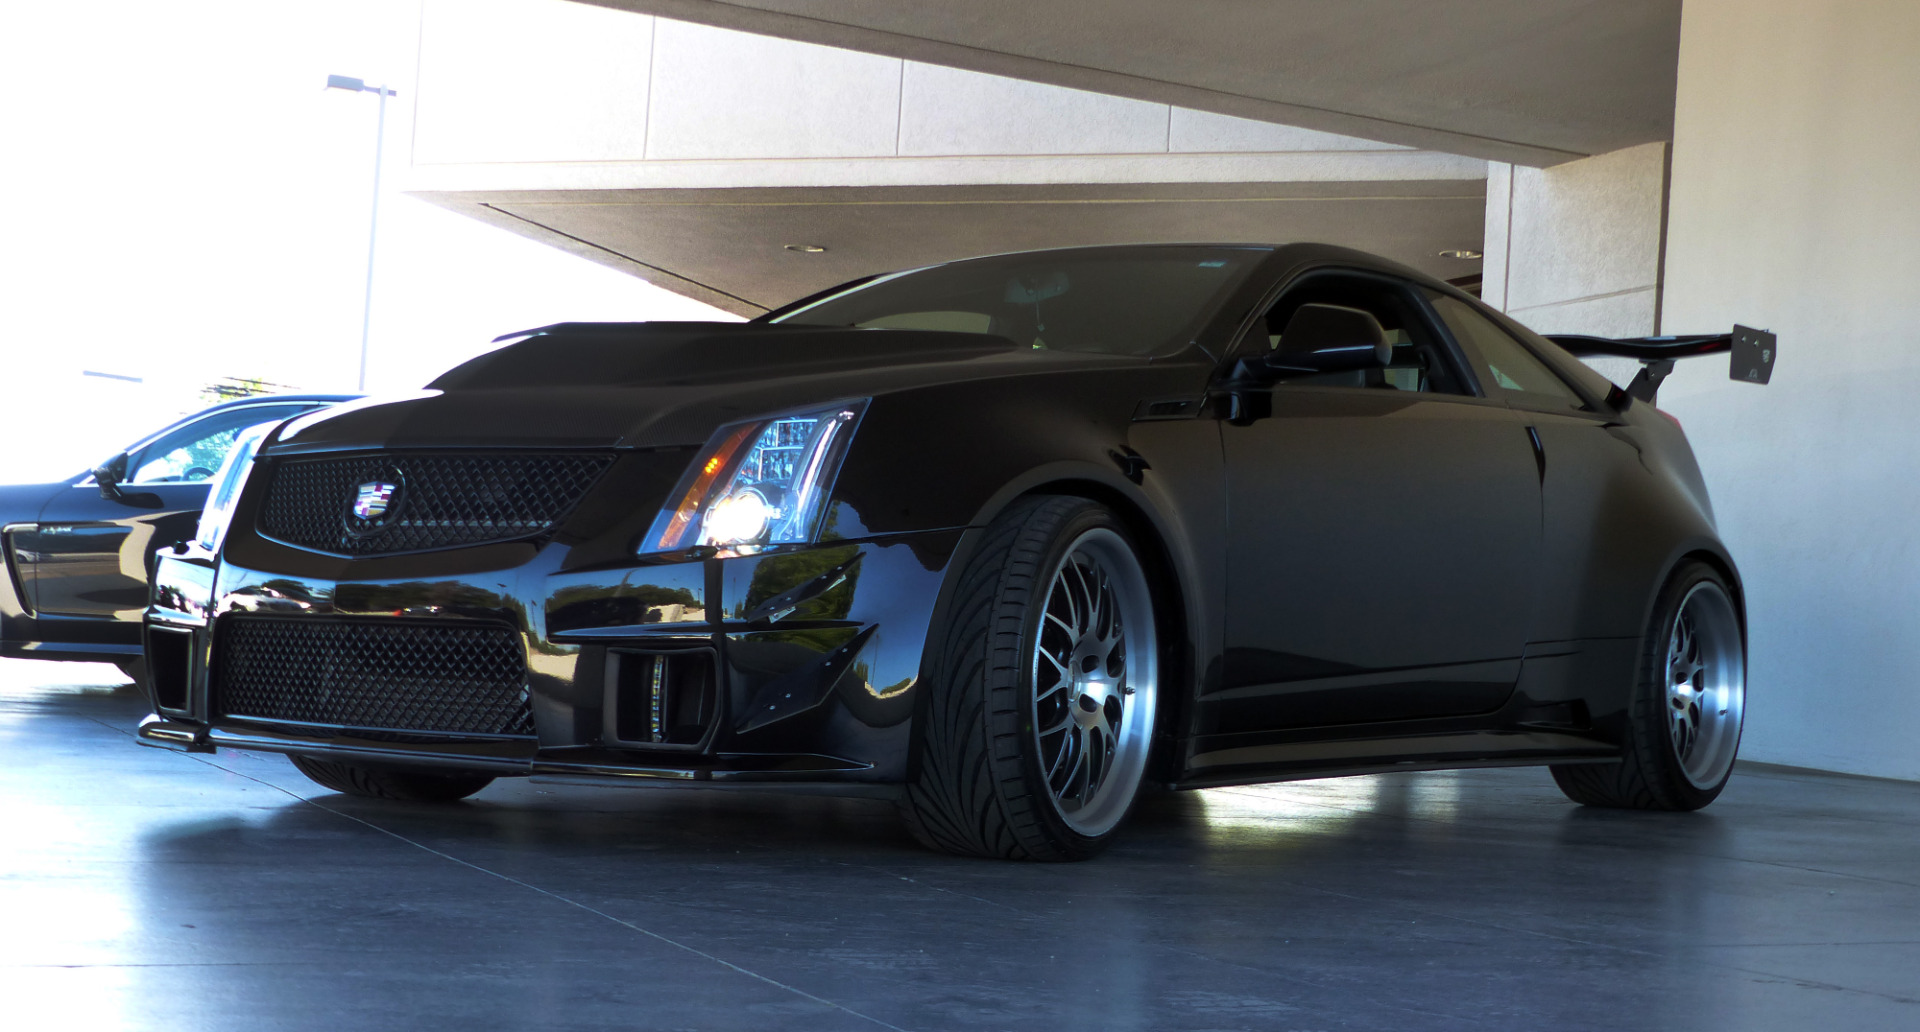 Cts V Interior Lights | www.indiepedia.org